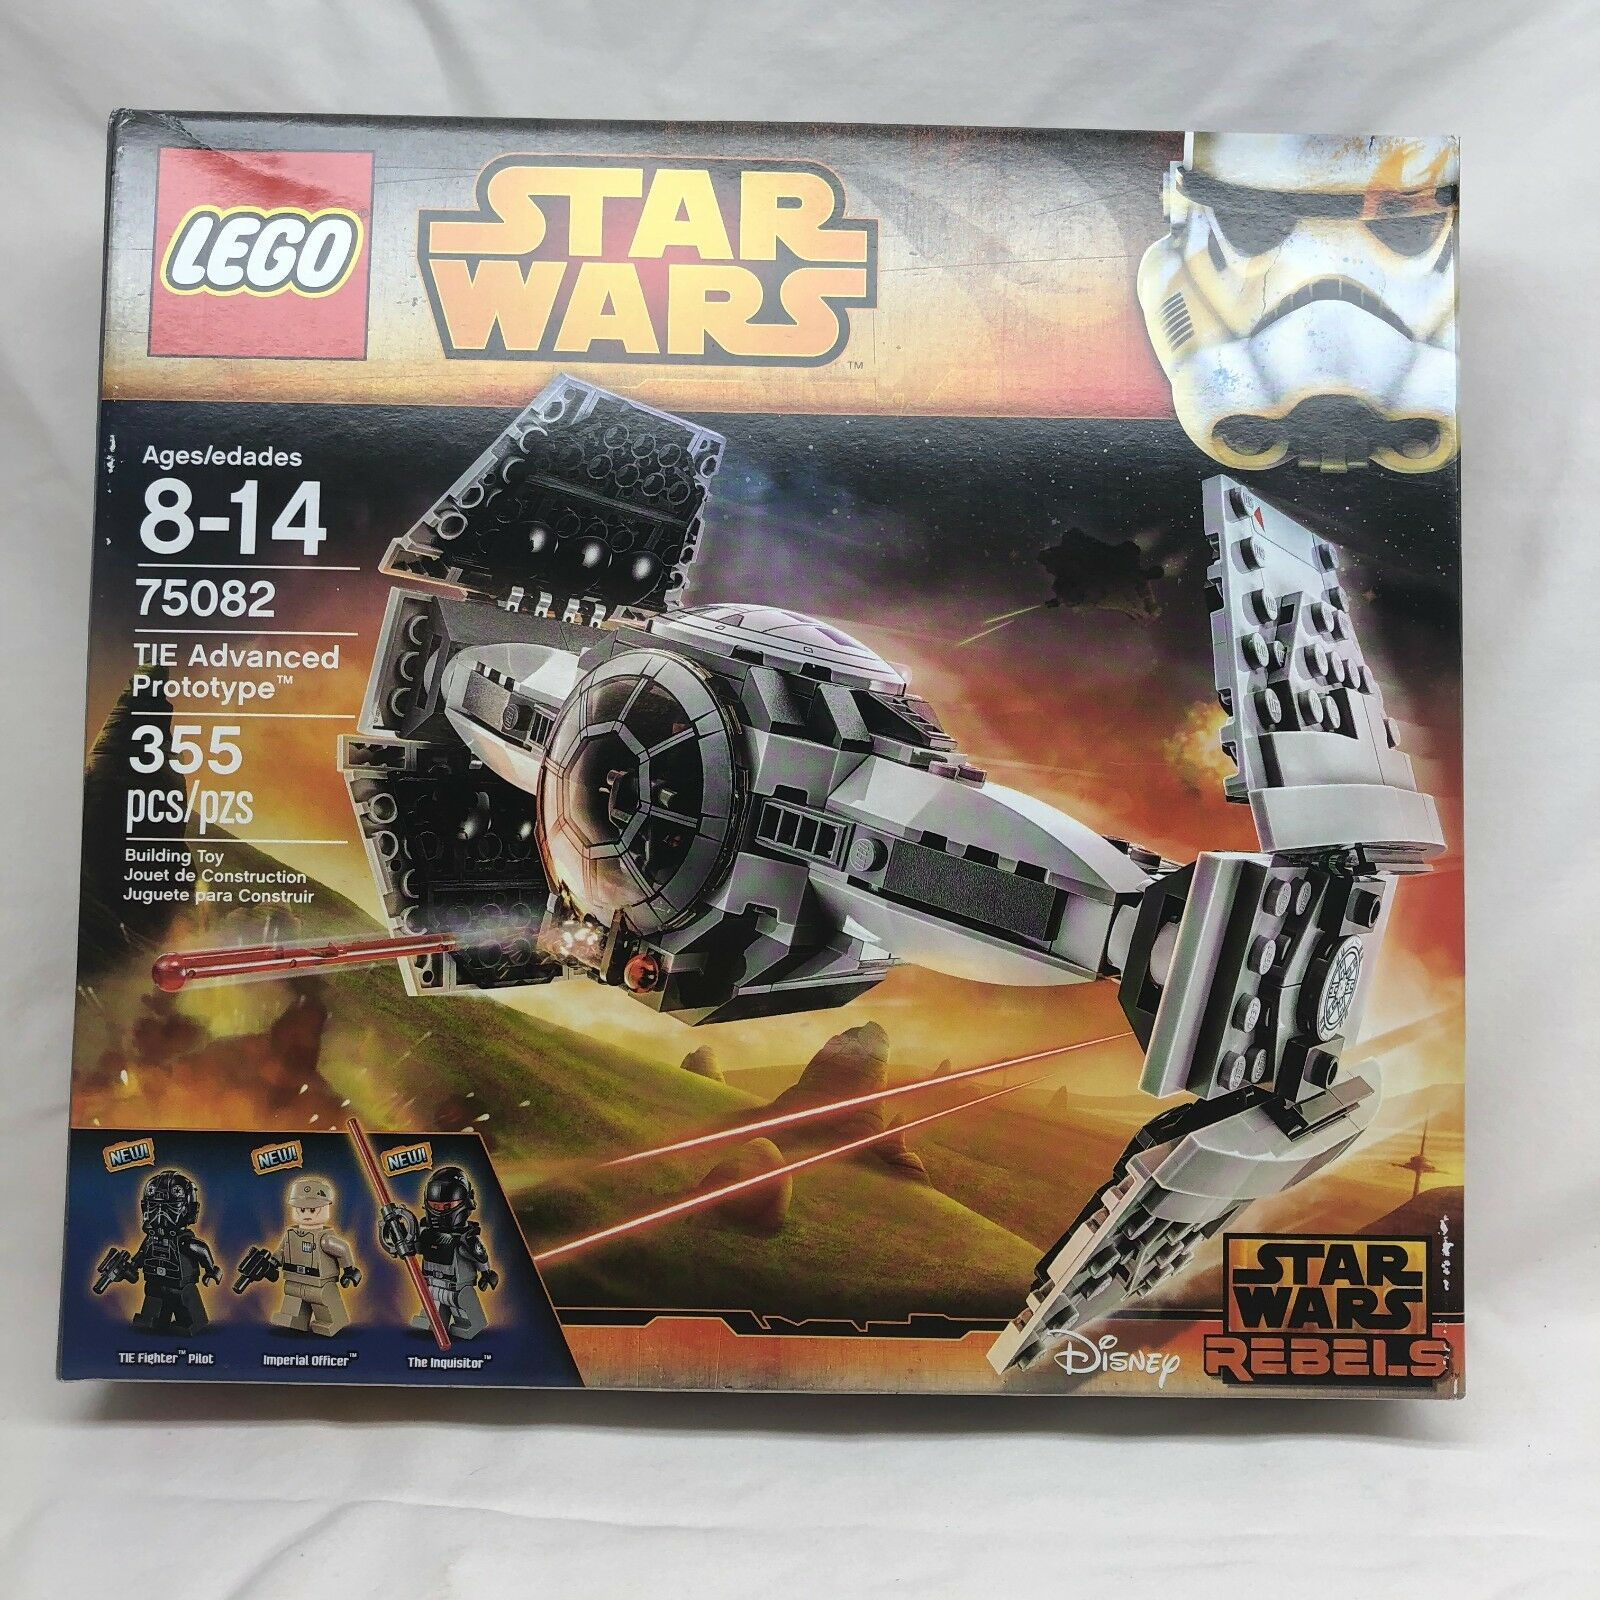 LEGO Star Wars Rebels 75082 TIE Advanced Prototype New Sealed